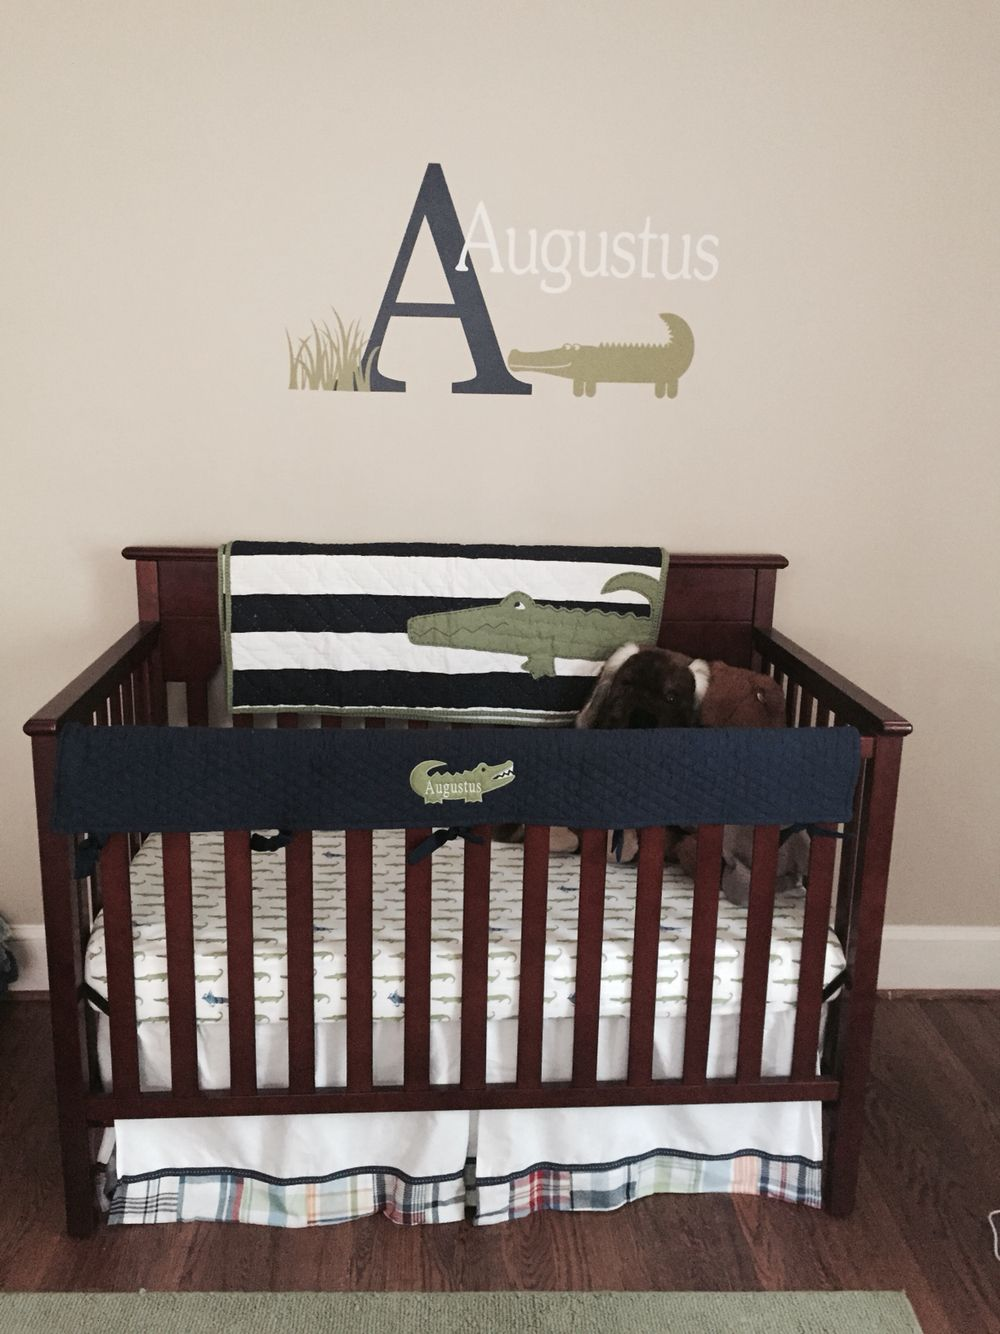 Pottery Barn Alligator Madras Plaid Nursery Bedding With Etsy Highlights